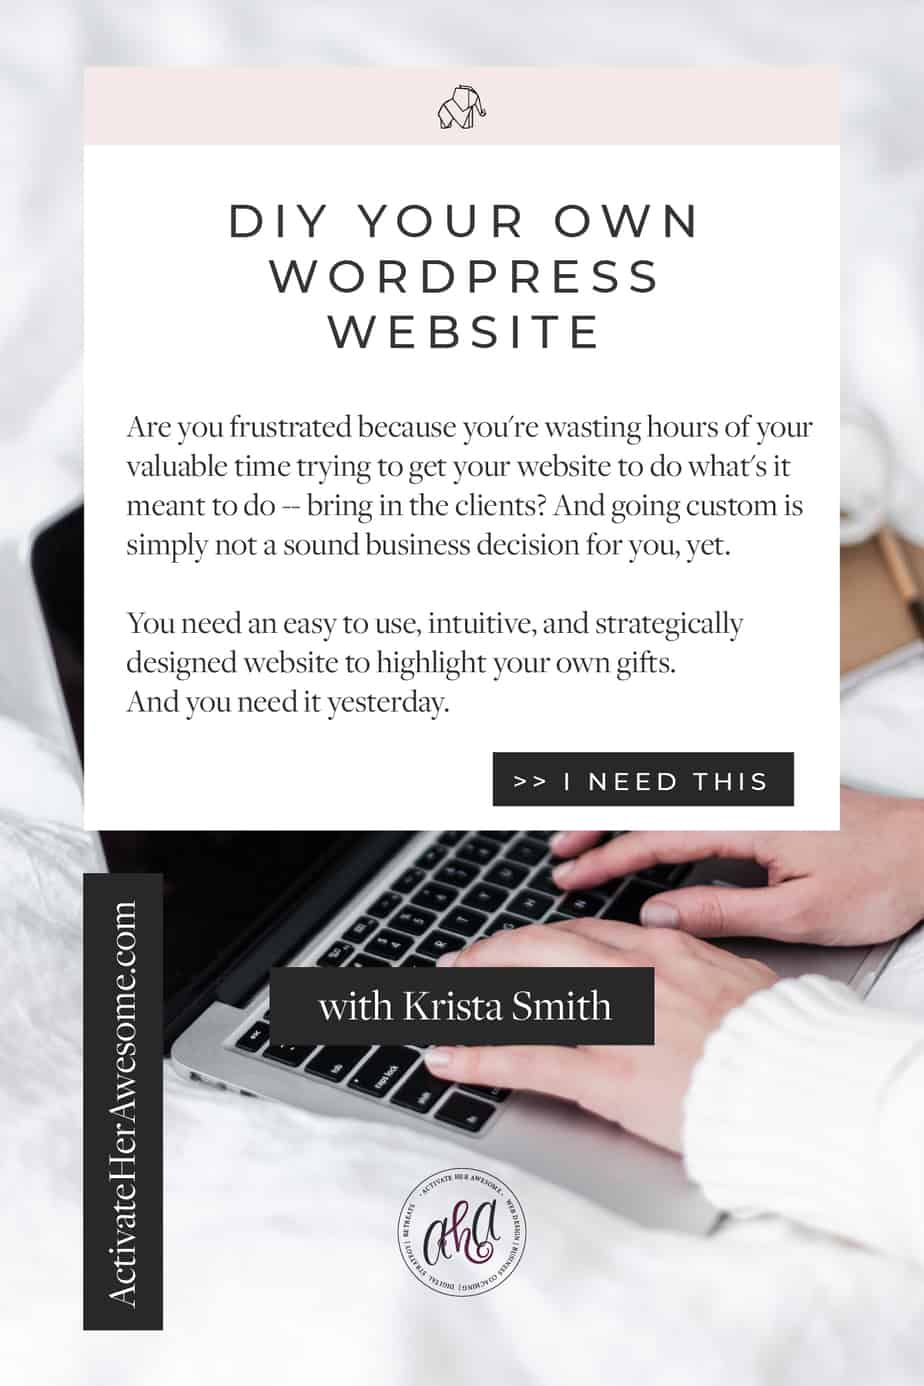 Website In A Weekend, DIY WordPress with Krista Smith. Are you frustrated because you're wasting hours of your  valuable time trying to get your website to do what's it  meant to do -- bring in the clients? And going custom is  simply not a sound business decision for you, yet.  You need an easy to use, intuitive, and strategically  designed website to highlight your own gifts.  And you need it yesterday. CHECK OUT WEBSITE IN A WEEKEND at ActivateHerAwesome.com